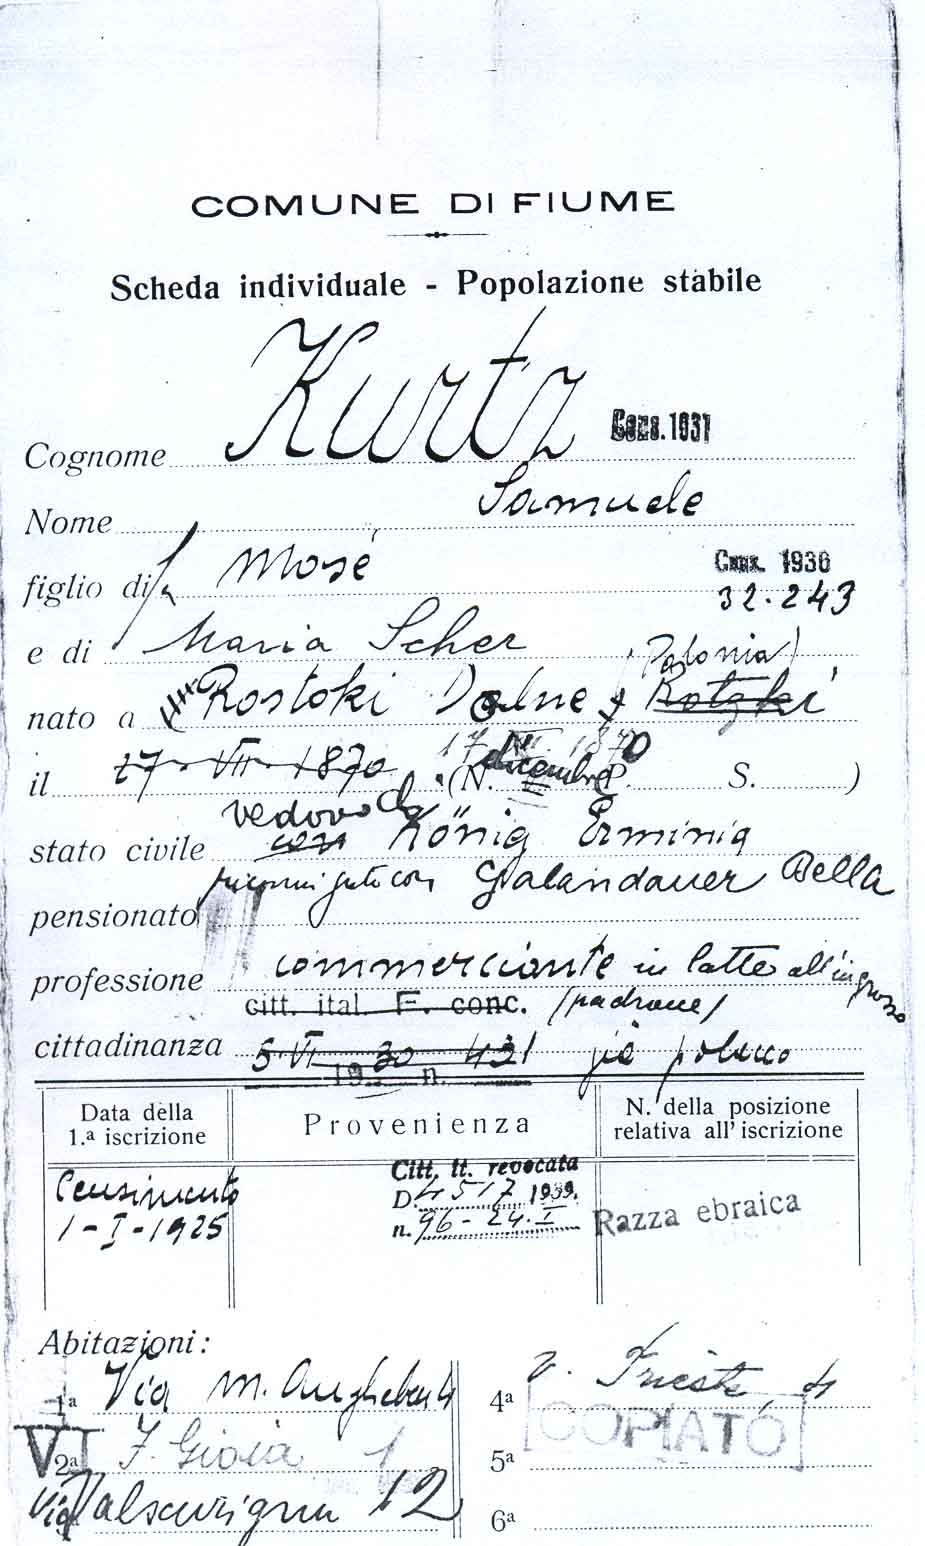 Dokument Samuel Kurtz 1930, Rijeka Civil Office Registers (Dank an Roberto Fiorentino!)